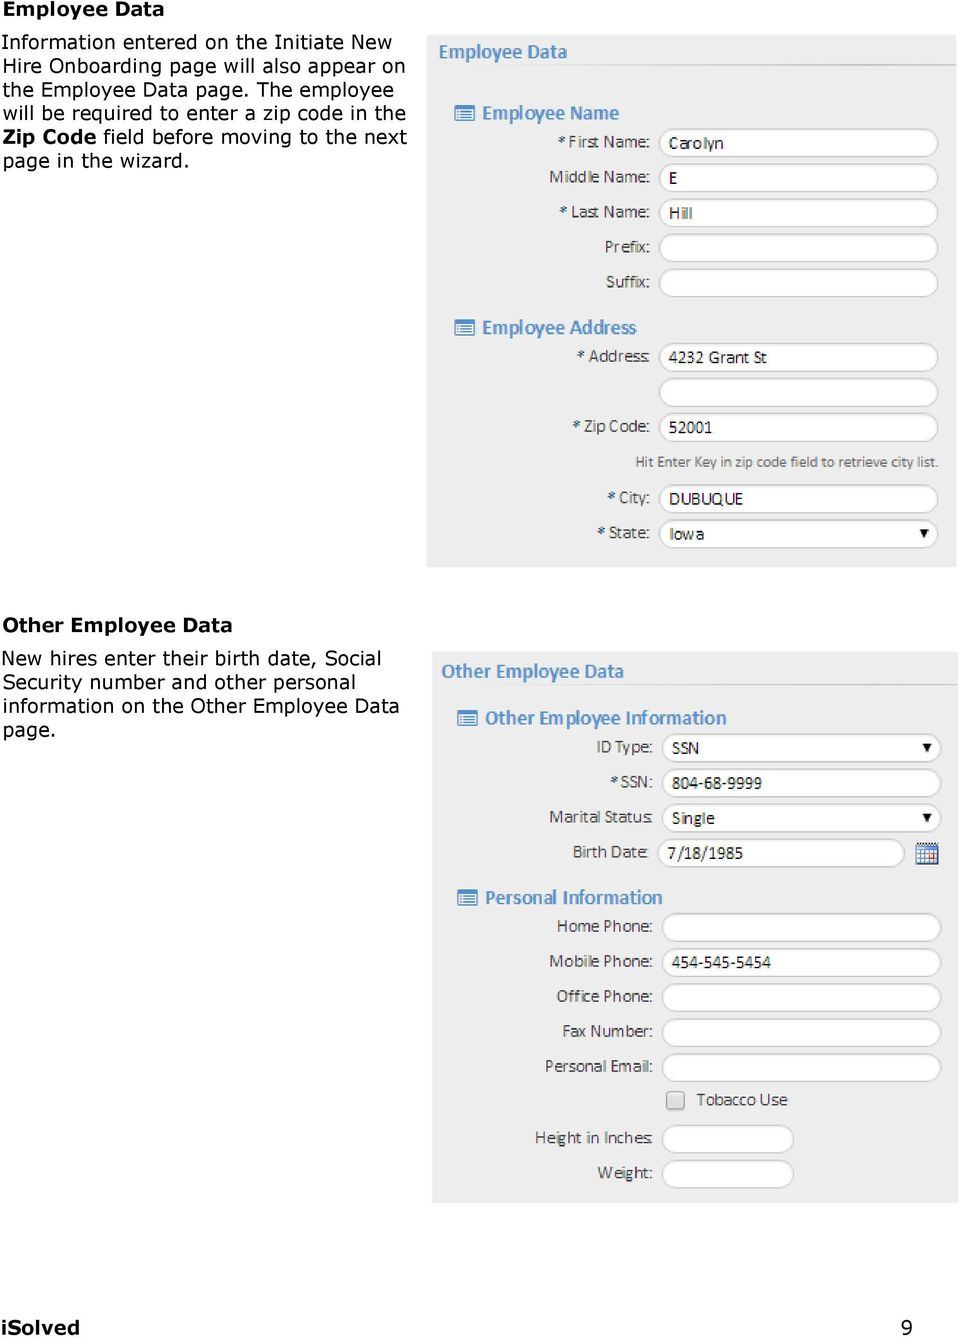 The employee will be required to enter a zip code in the Zip Code field before moving to the